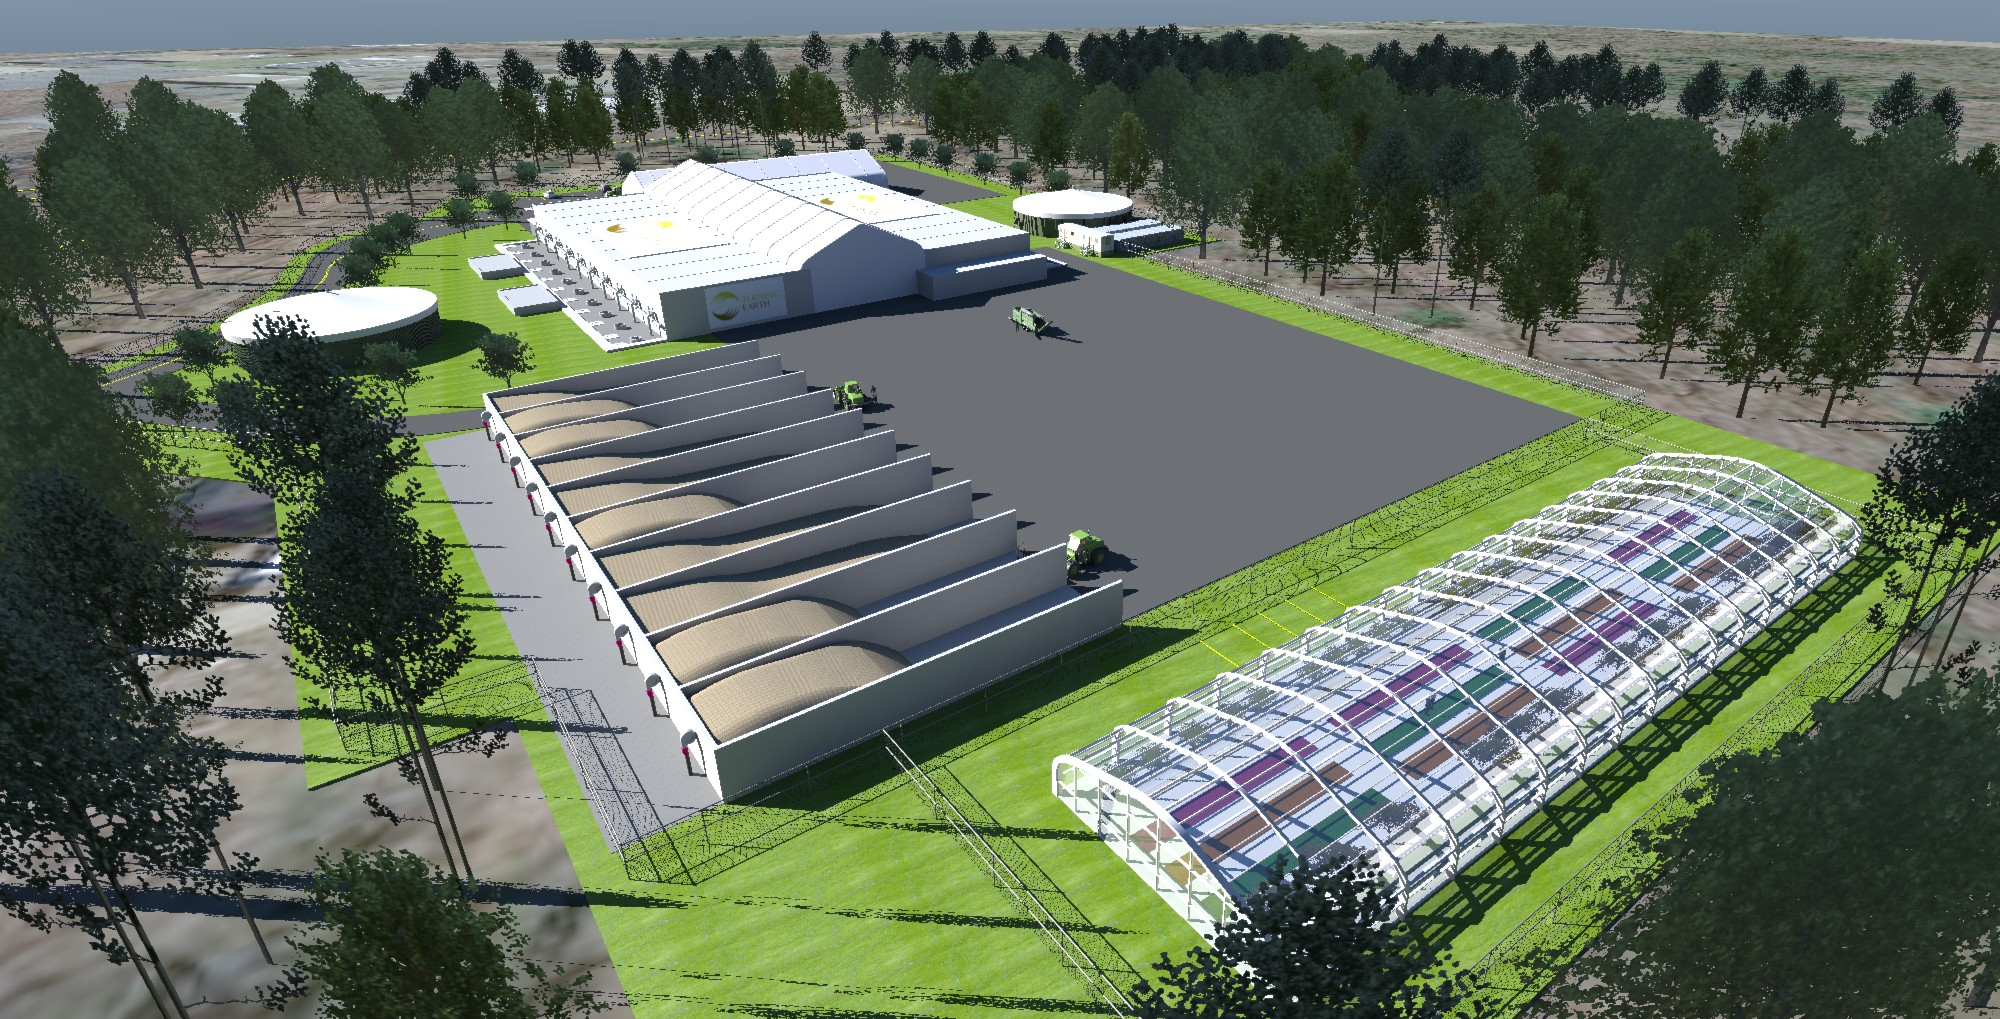 Rendering for food waster anaerobic digester planned in Southington by Turning Earth Central Connecticut. It would use 50,000 tons of food waste and 25,000 tons of other organic wast to generate 1.4 megawatts of power.